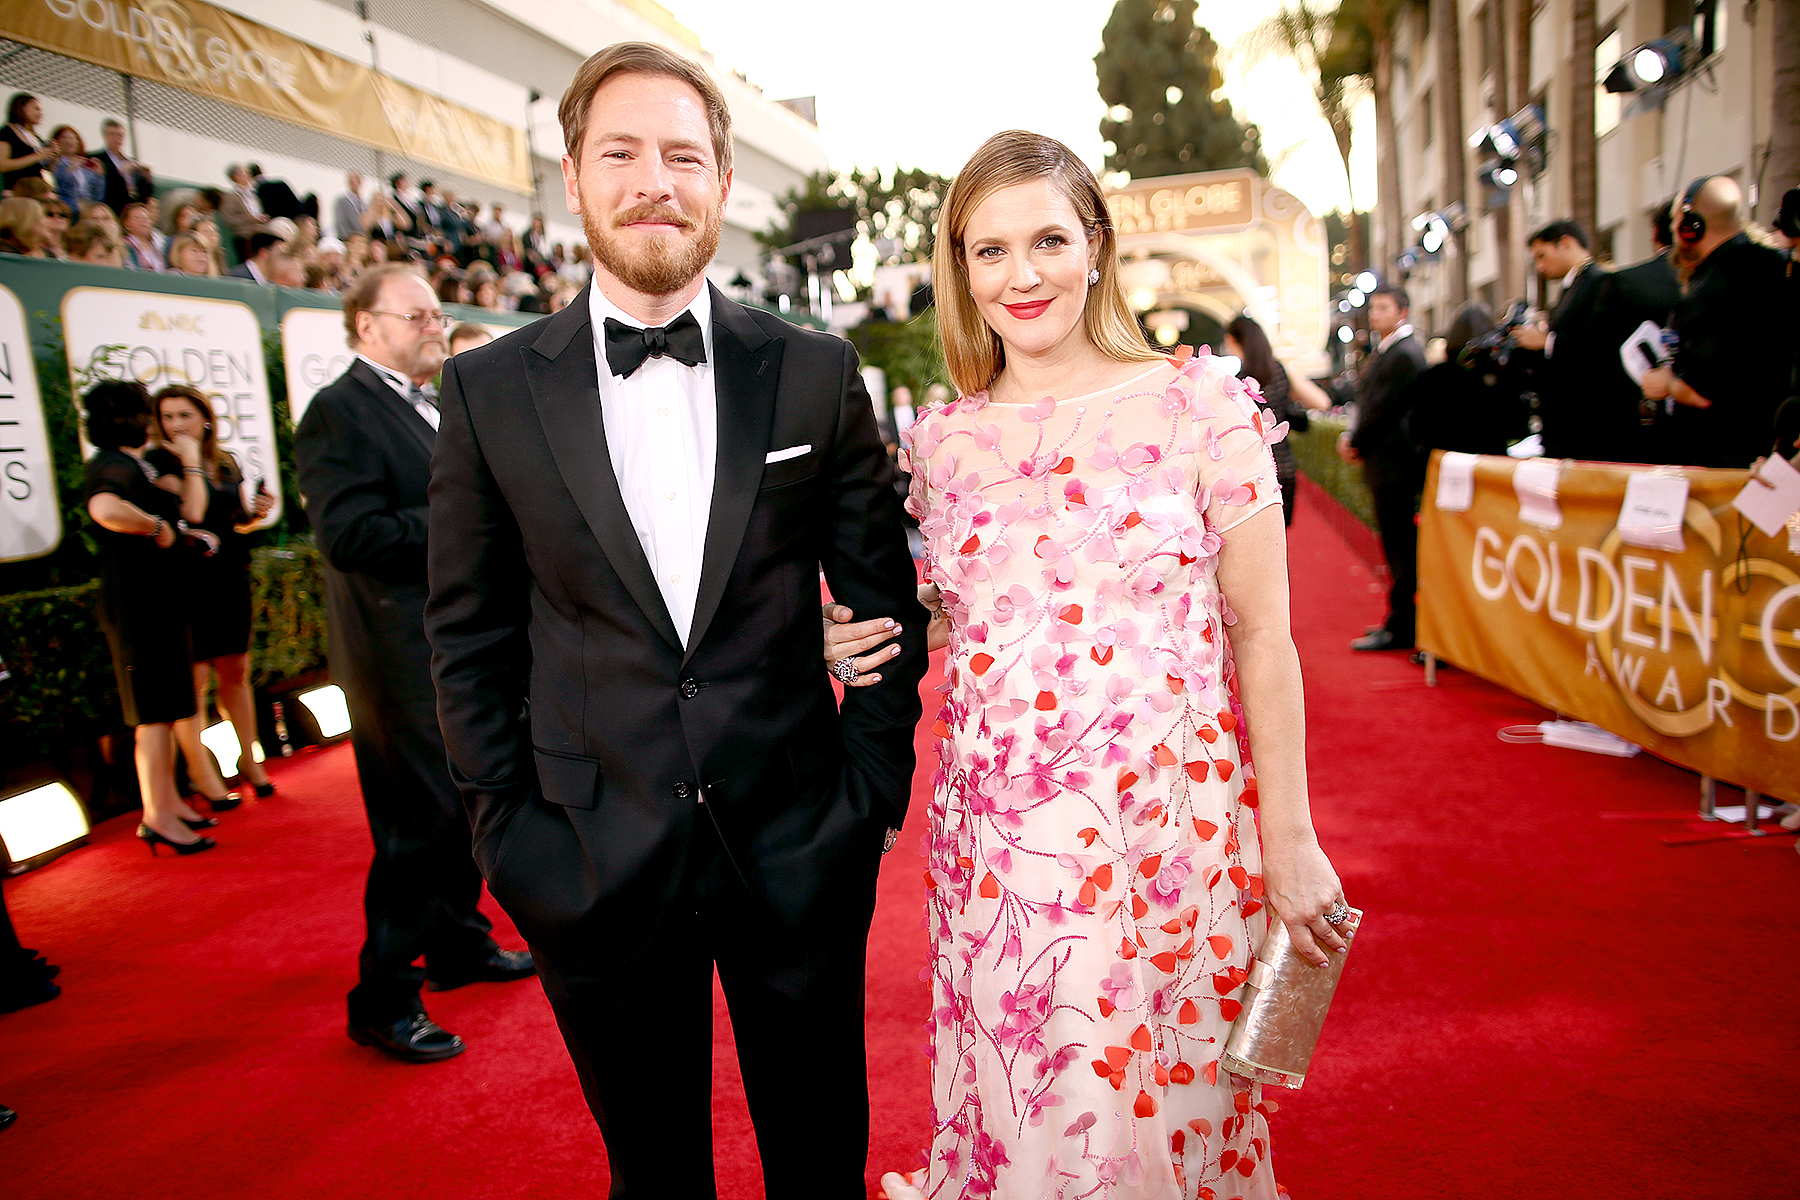 Will Kopelman and Drew Barrymore arrive at the 71st Annual Golden Globe Awards held at the Beverly Hilton Hotel on January 12, 2014.